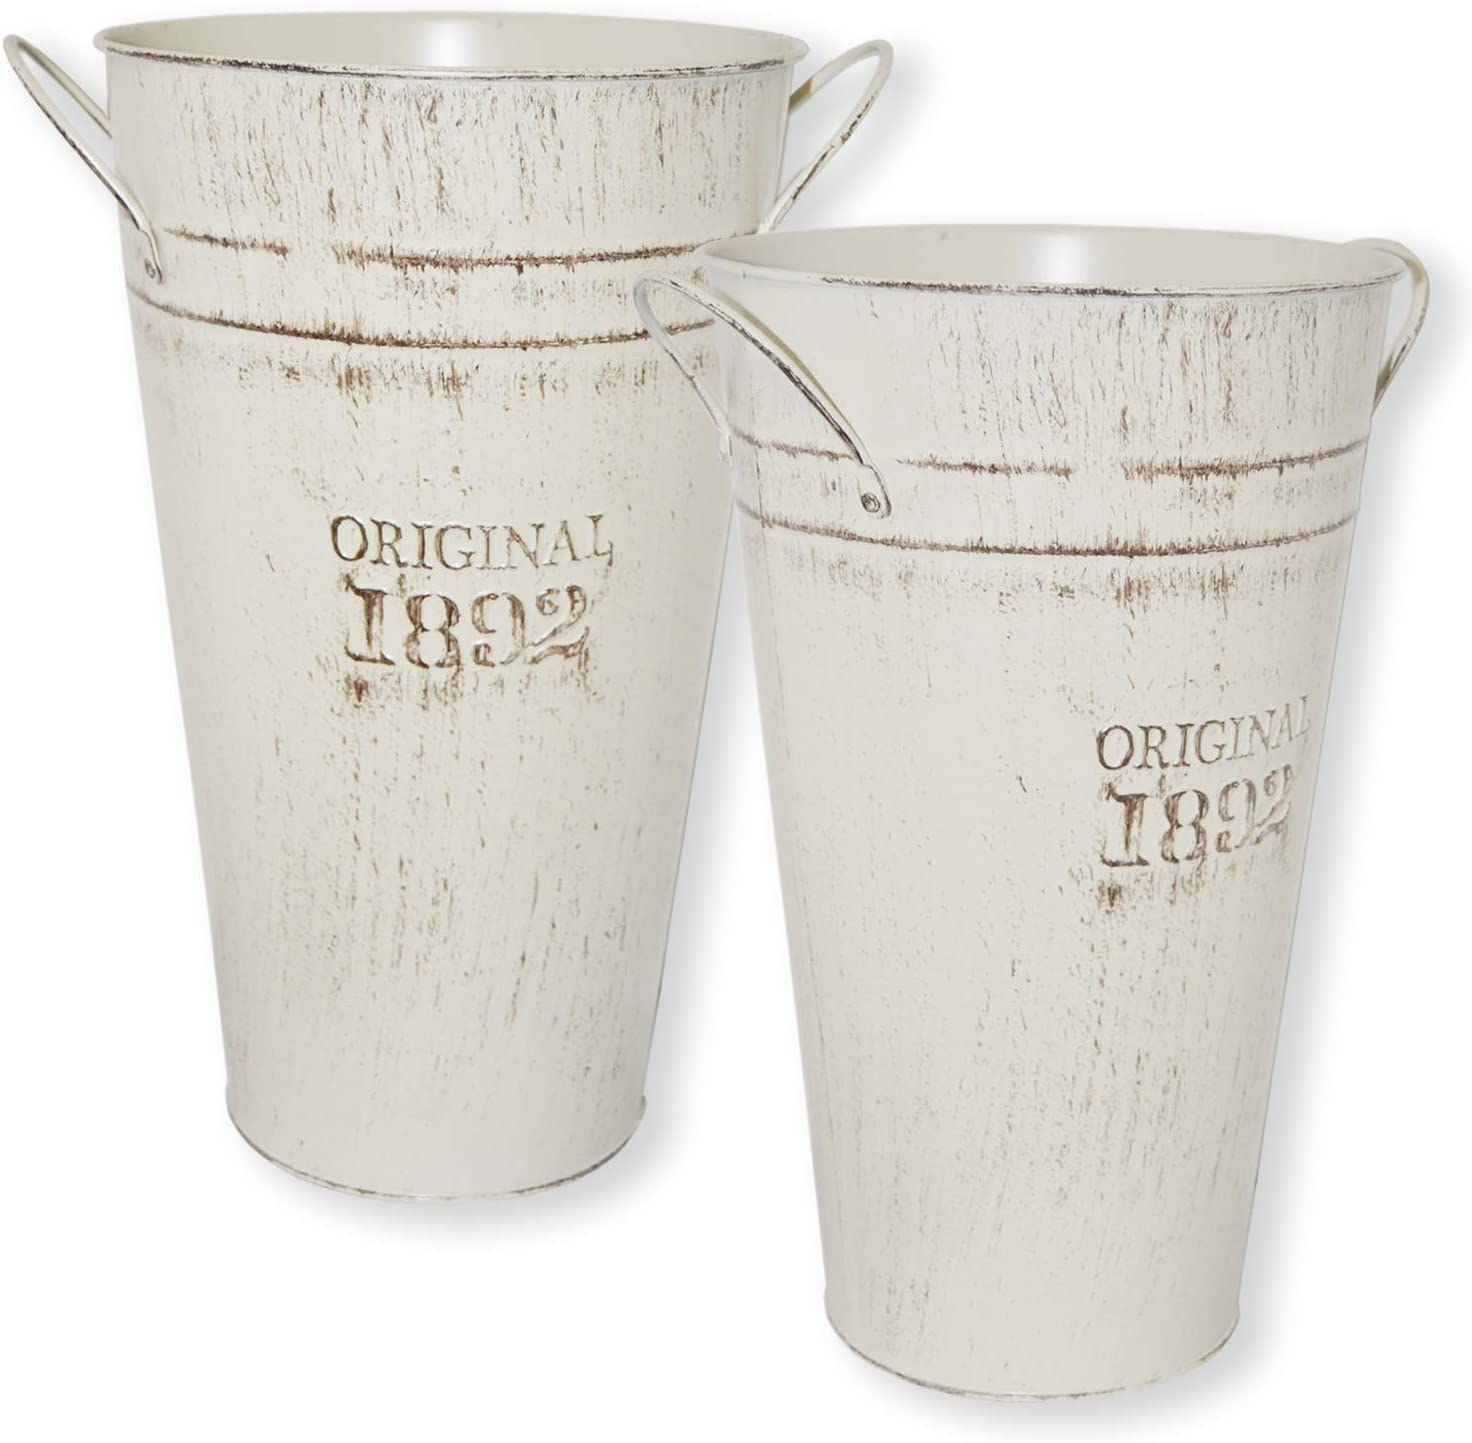 Lesen 12 Inch Vintage White Metal Flower Vase - Set of 2 - Farmhouse Galvanized French Bucket - Table Centerpiece Rustic Home Decor for Fresh and Dried Floral Arrangements for Home and Weddings